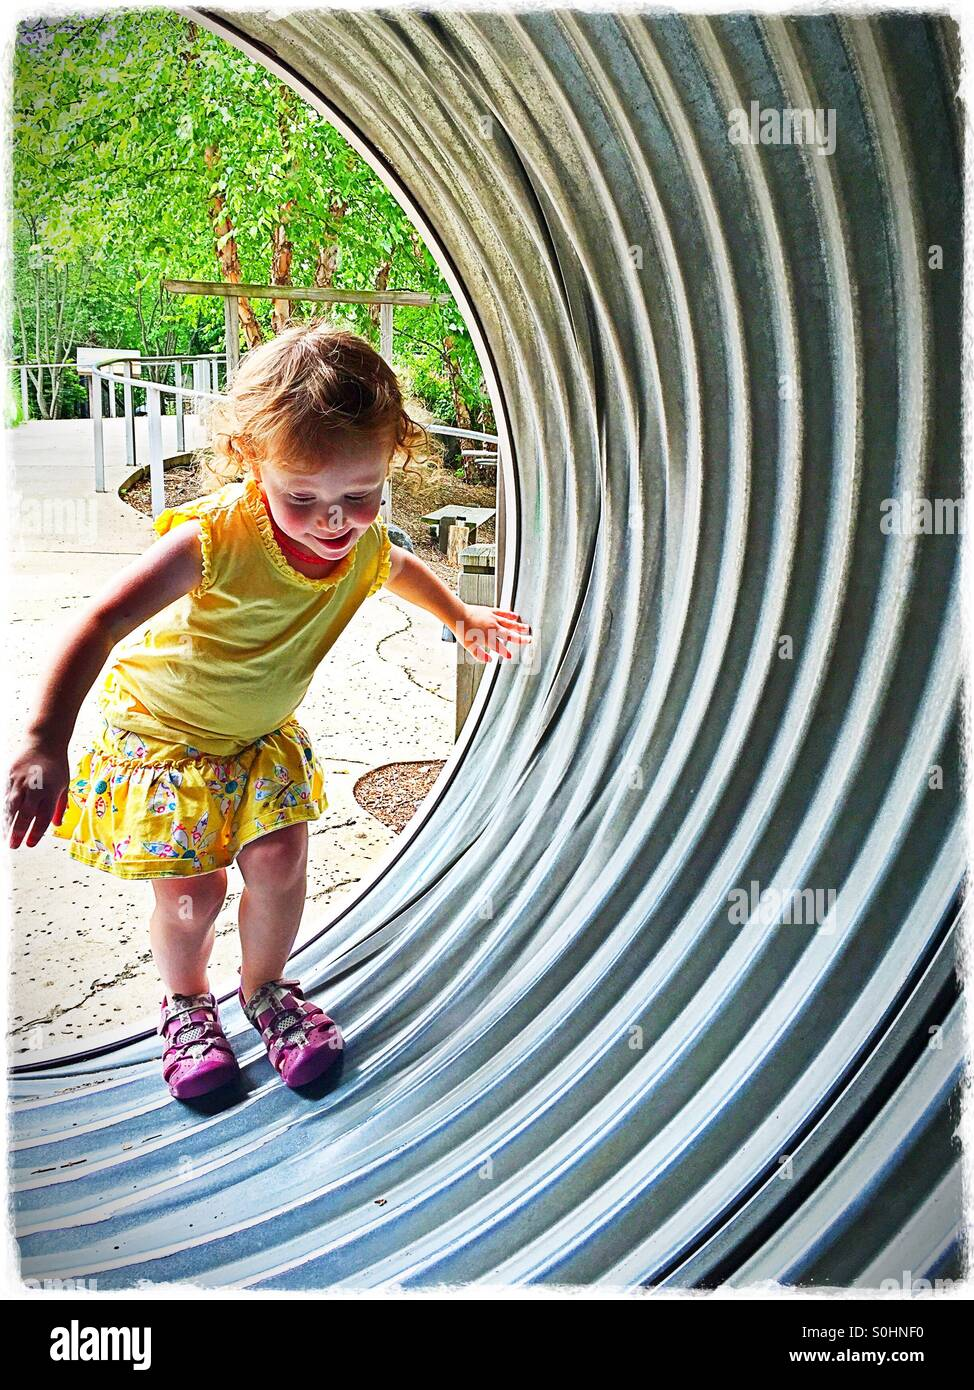 Toddler climbing into tunnel - Stock Image